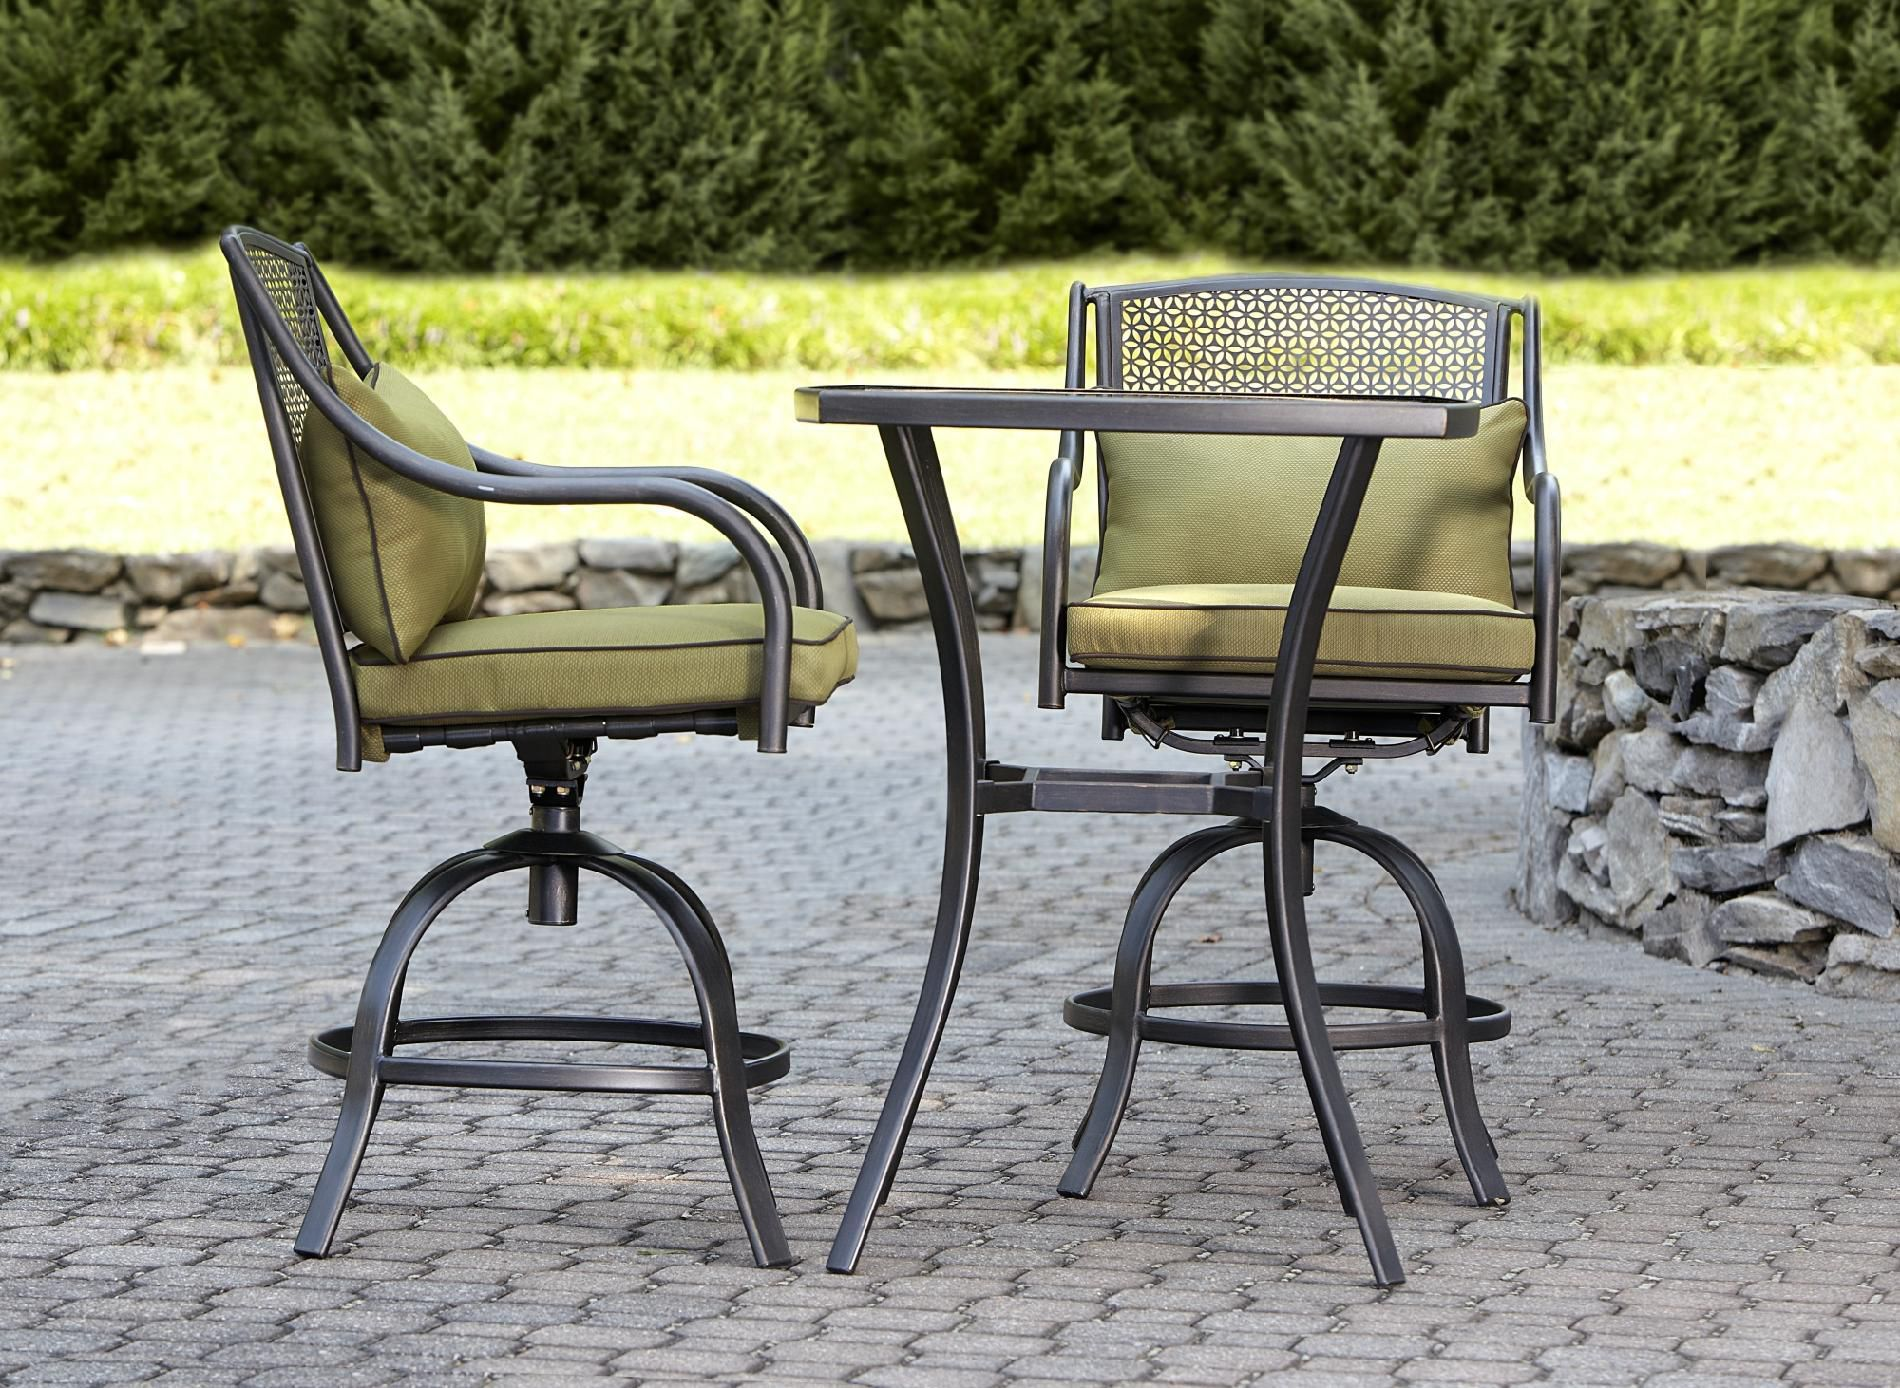 Genial Bowery 3Pc Stamped Back Tall Bistro Set: Sit And Sip With Set From Sears  $120